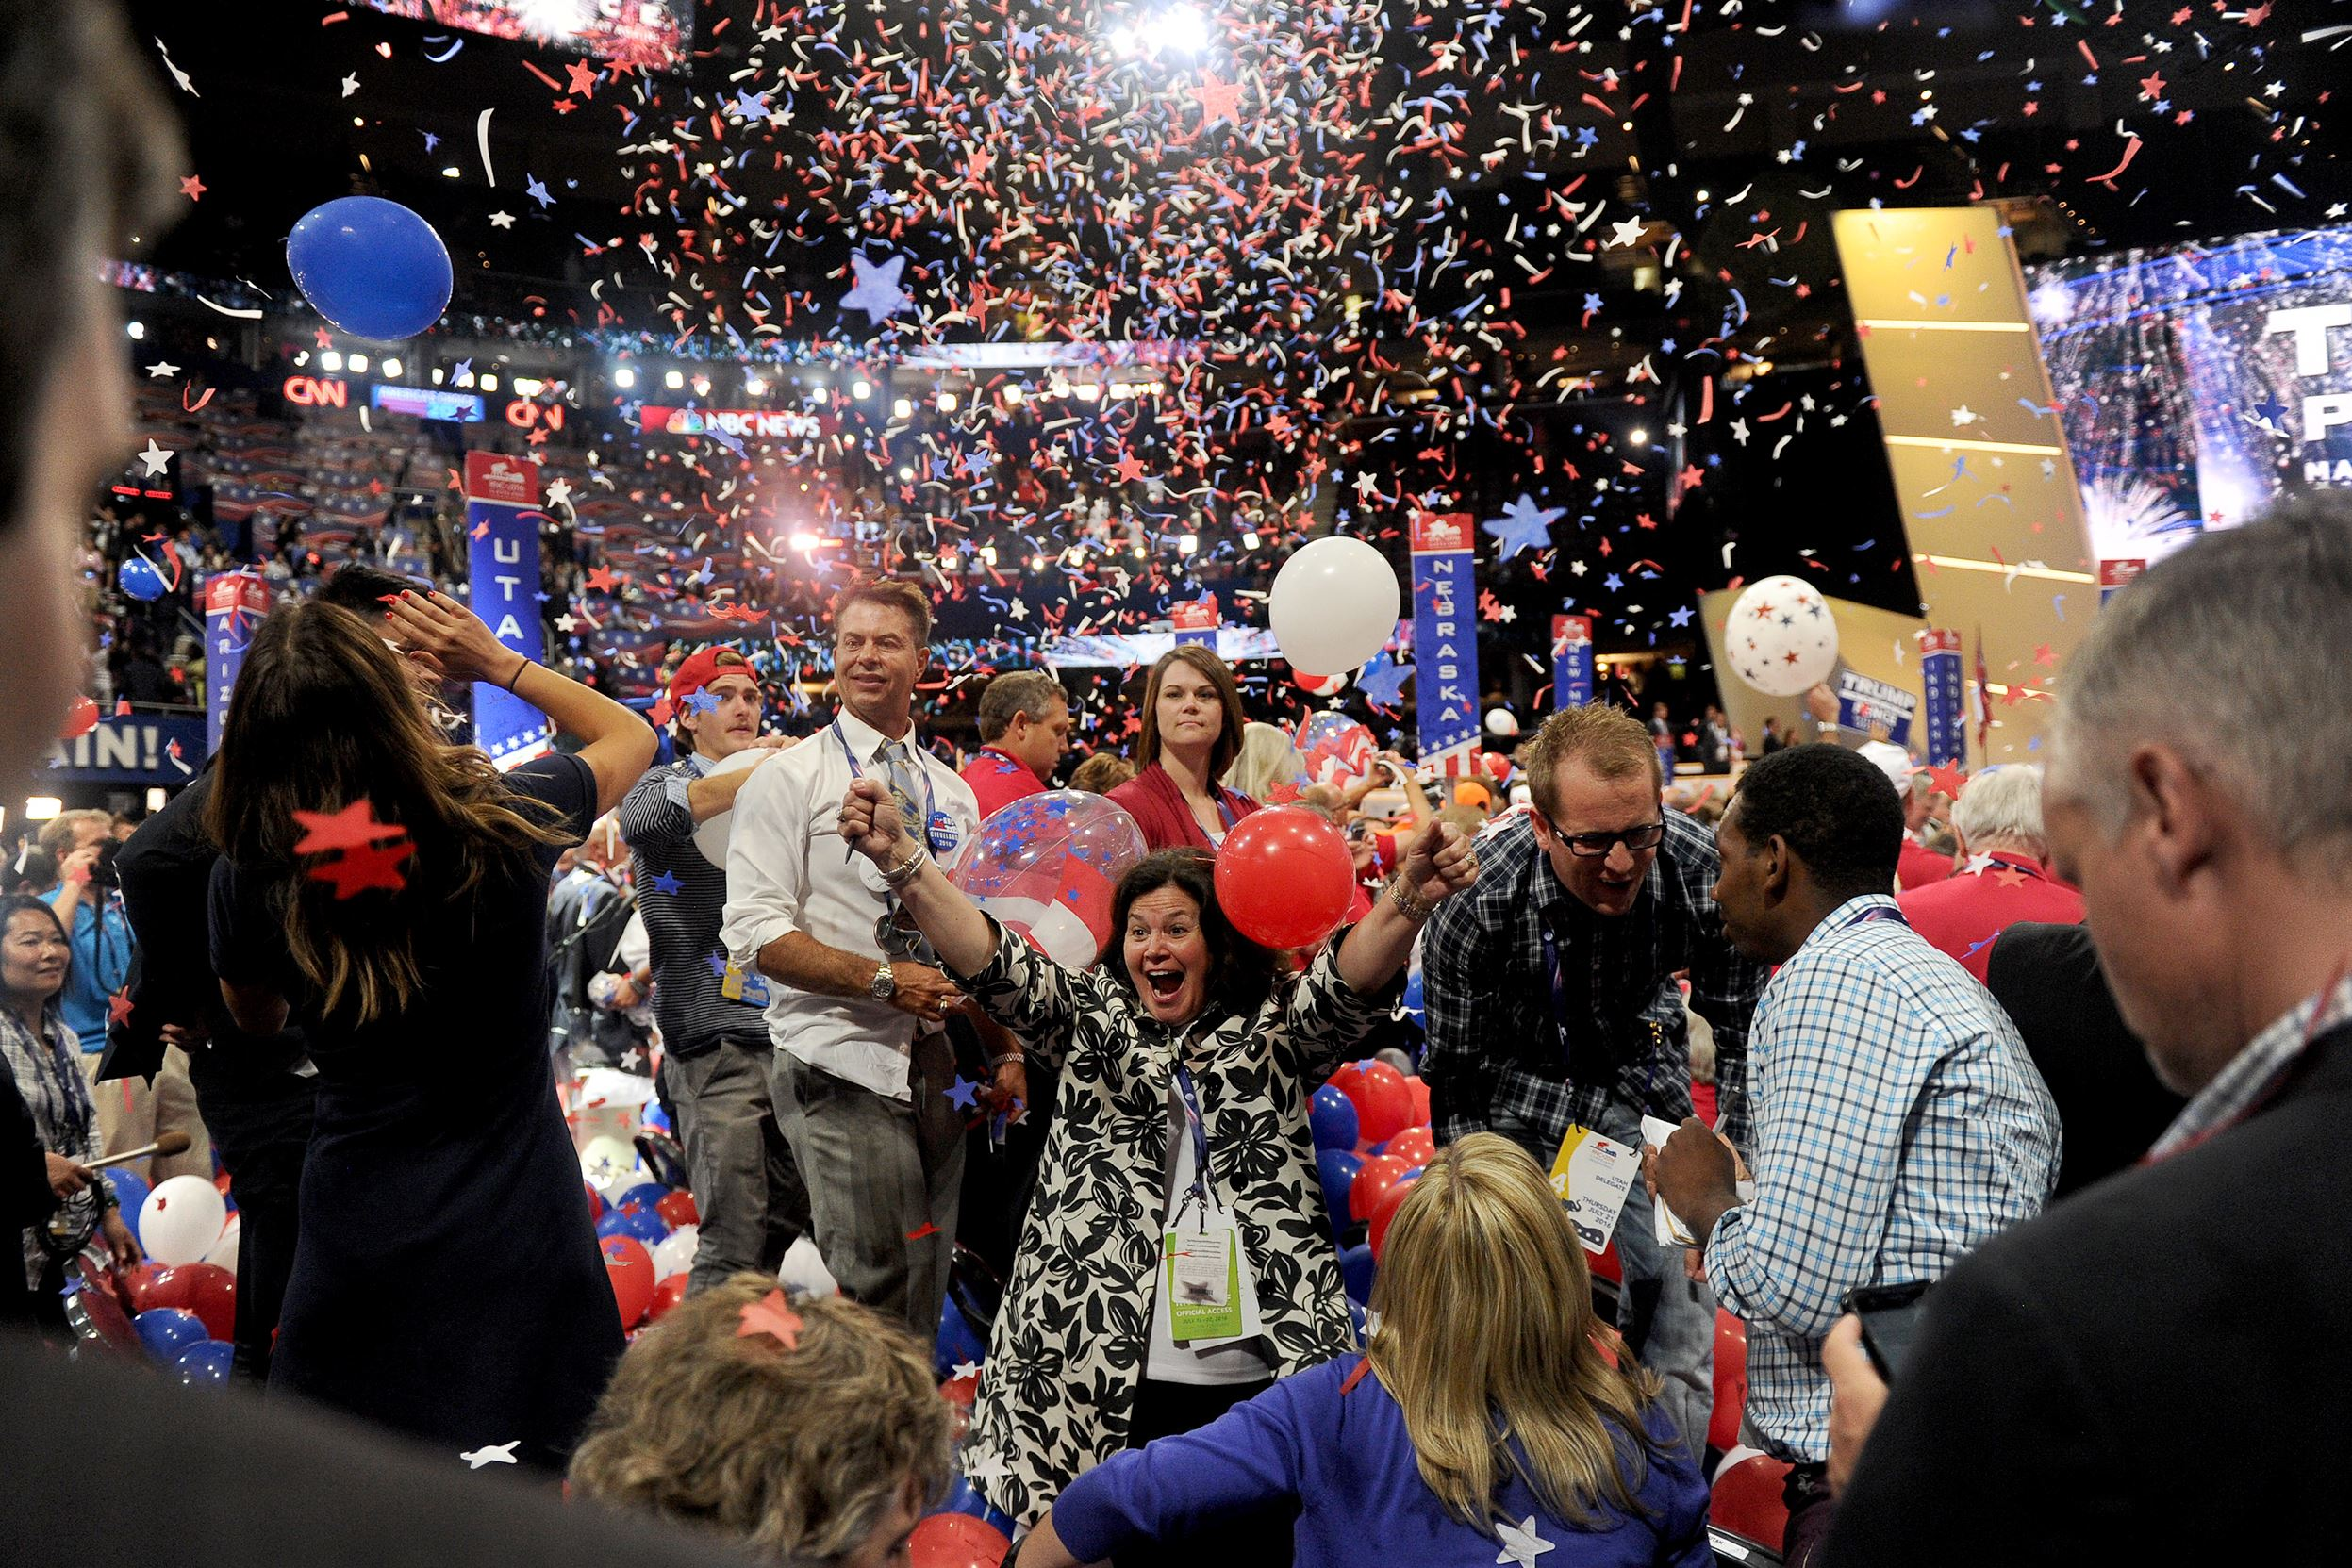 20160722MWHtrumpLocal02-1 Balloons drop from the ceiling after Republican Presidential candidate Donald Trump's speech wraps up the Republican National Convention at the Quicken Loans Arena in Cleveland, Thursday night..